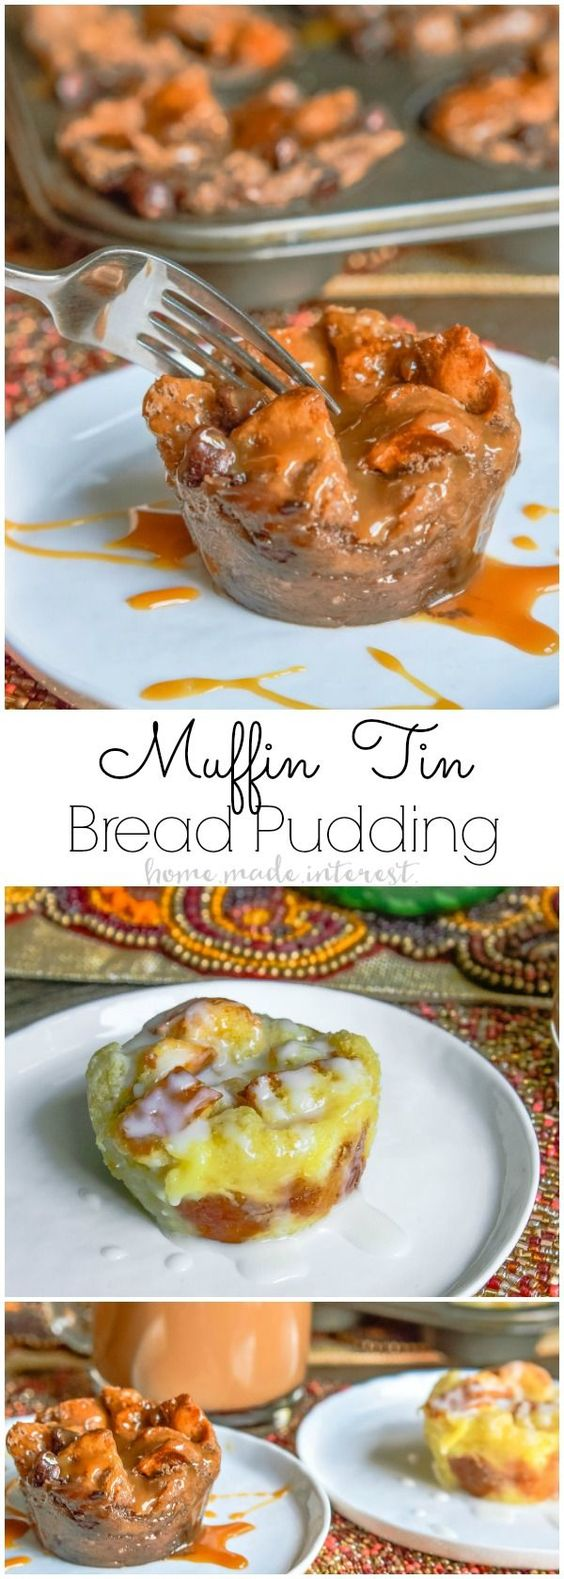 This muffin tin bread pudding is an easy bread pudding recipe that makes individual servings! These are perfect for Thanksgiving dessert or Christmas dessert because you can make multiple flavors in one muffin tin. I've made two of my favorite flavors Sugar Cookie Bread Pudding and Caramel Mocha Bread Pudding. Both are amazing! #DelightfulMoments #ad /walmart/